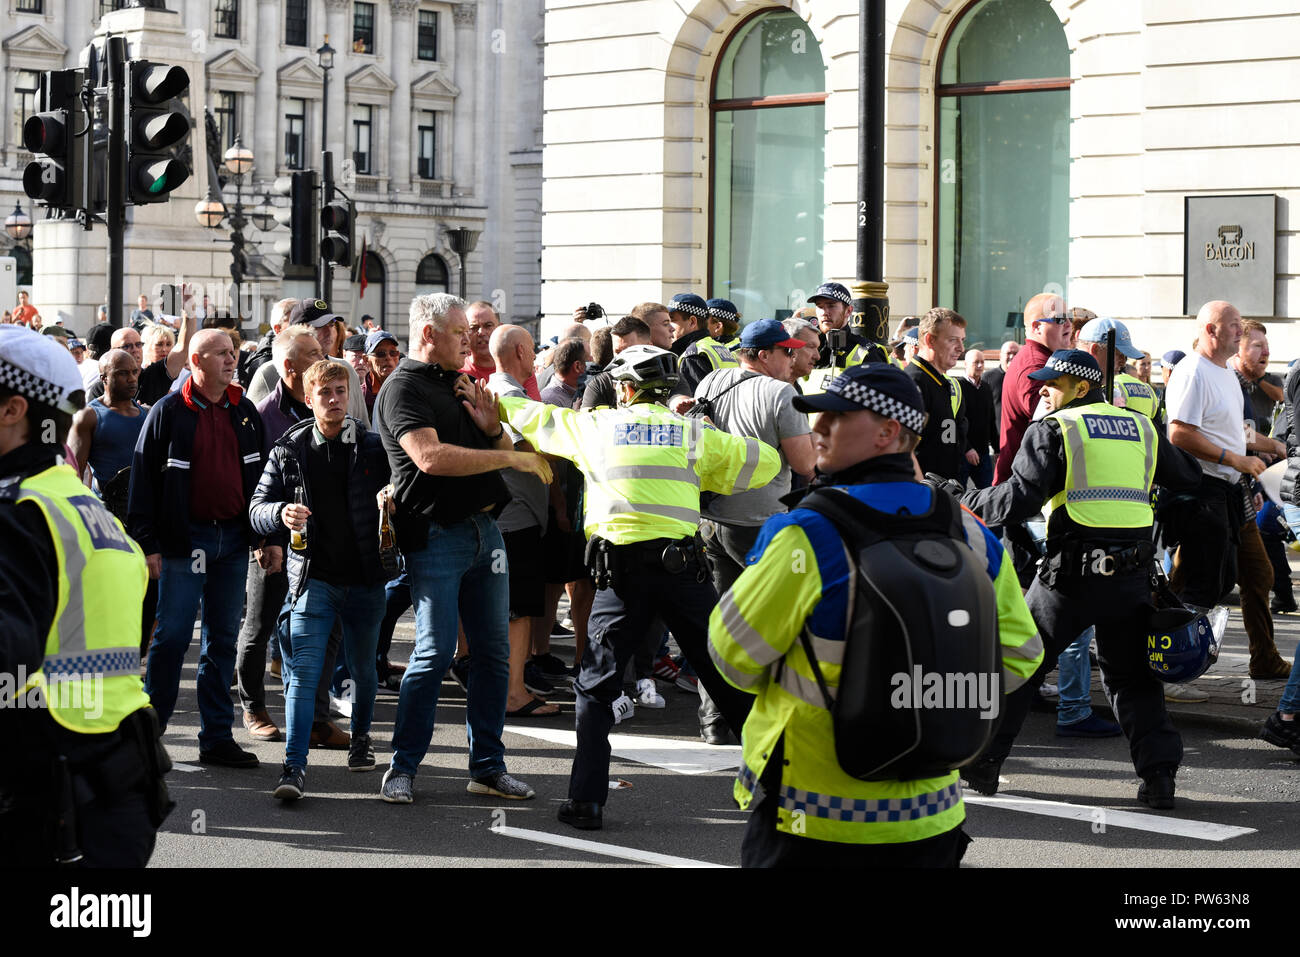 democratic-football-lads-alliance-dfla-marching-towards-parliament-london-in-protest-demonstration-marchers-broke-through-a-police-cordon-and-scuffles-took-place-PW63N8.jpg